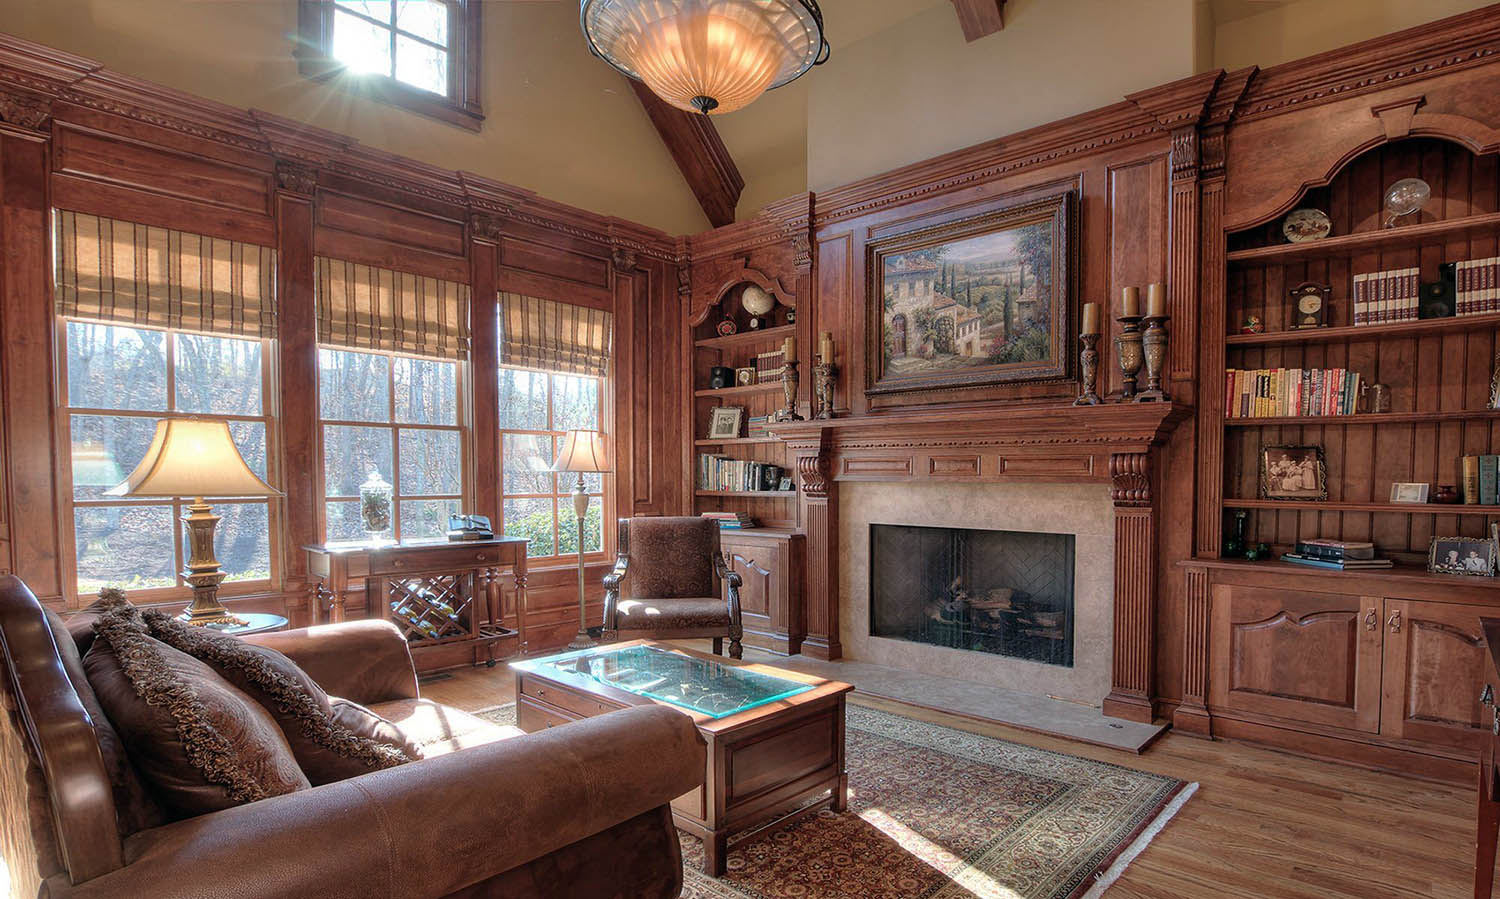 Sitting room with stained wood wall paneling. Vaulted ceiling with wood beams. Fireplace with wood surround. Built in cabinets and shelving.